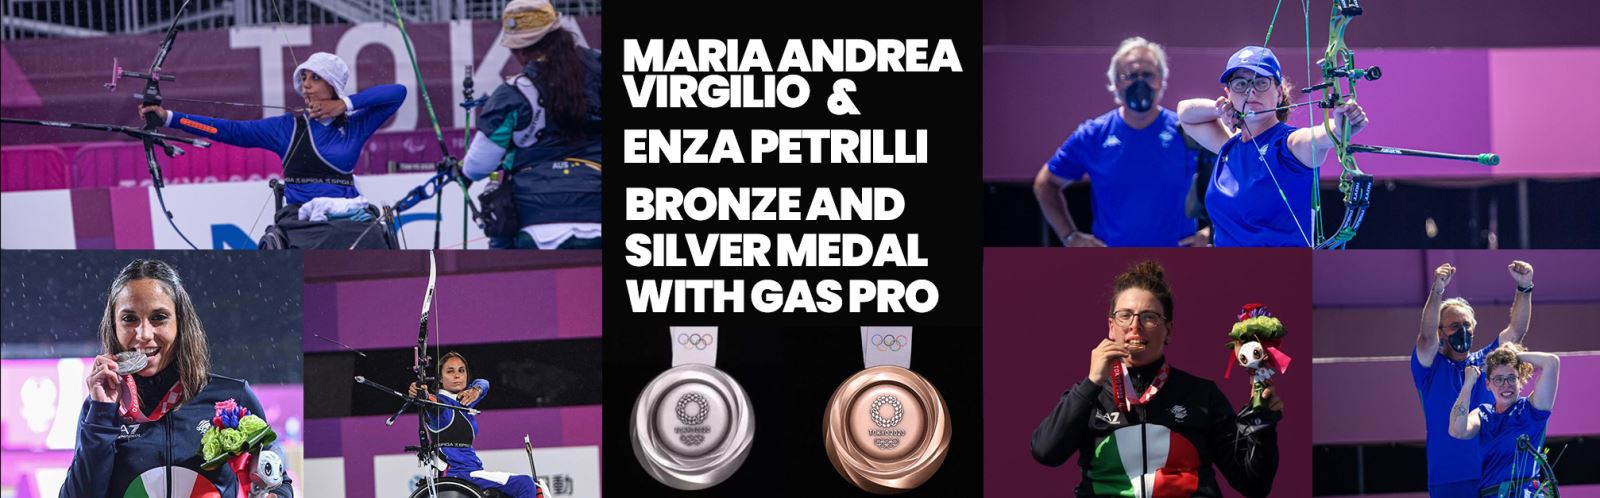 Gas Pro Bronze and Silver Medal Tokyo 2020